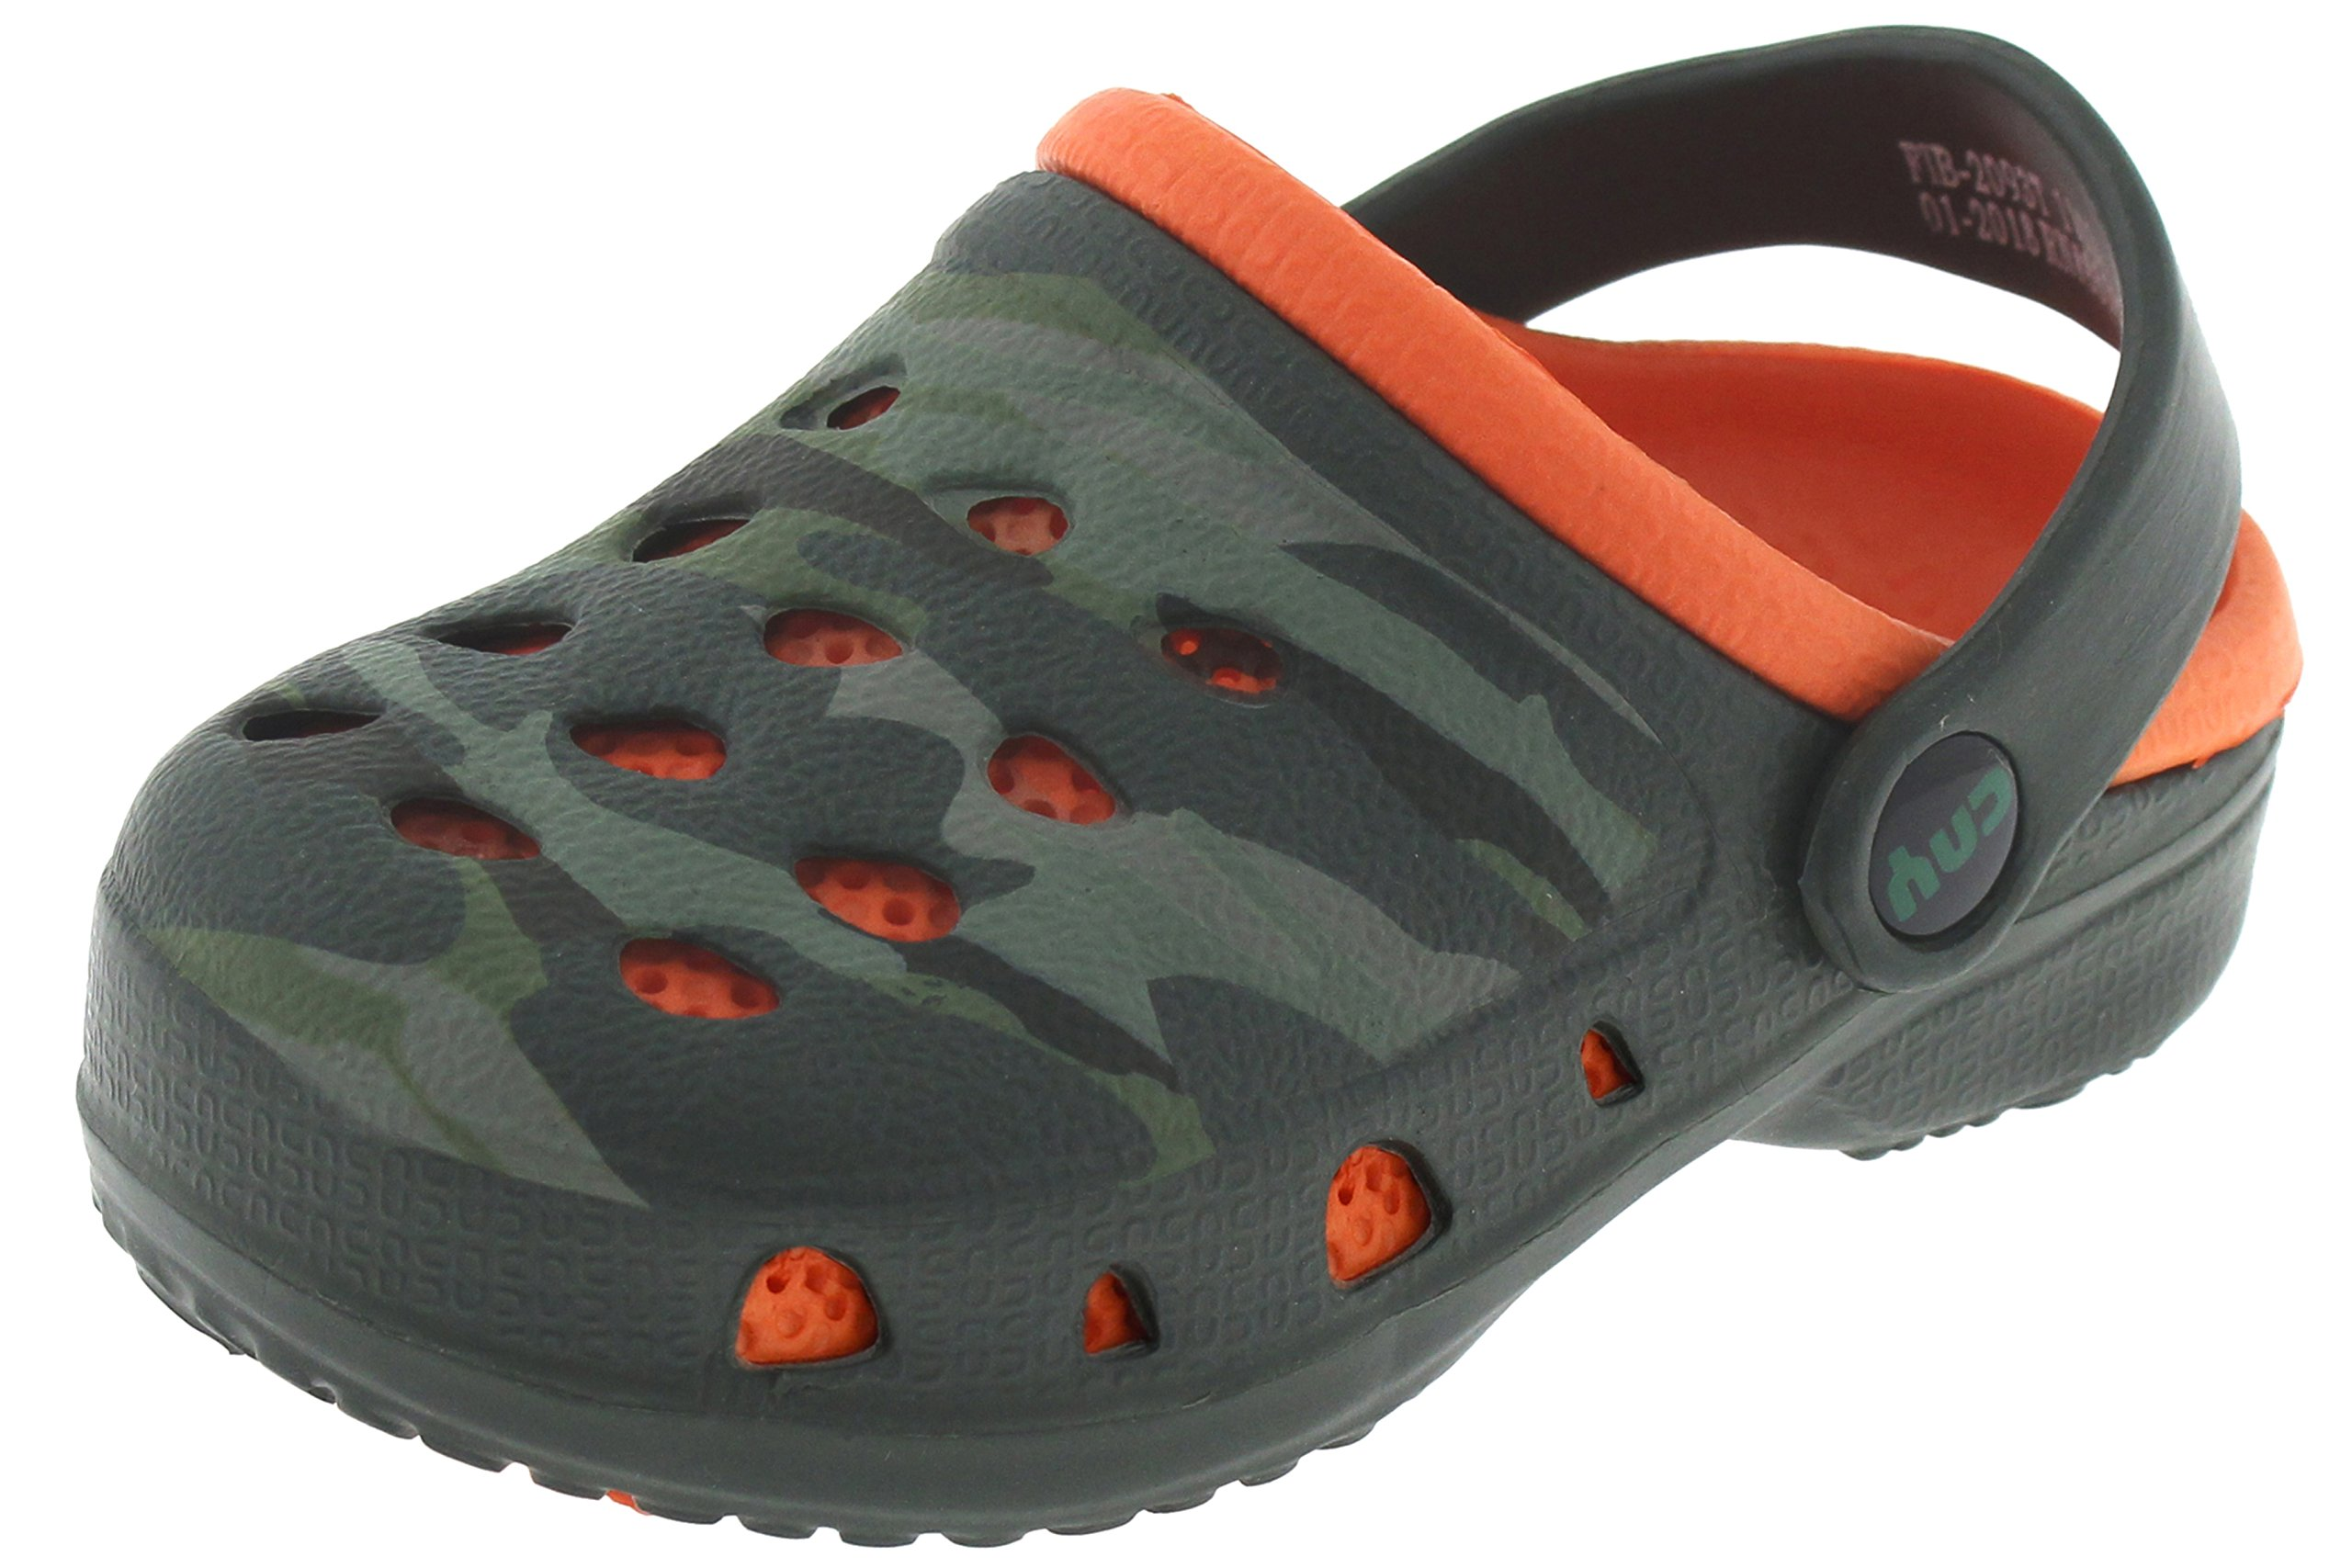 Capelli New York Toddler Boys Camo Printed Two Tone Clogs with Backstrap Green Combo 8/9